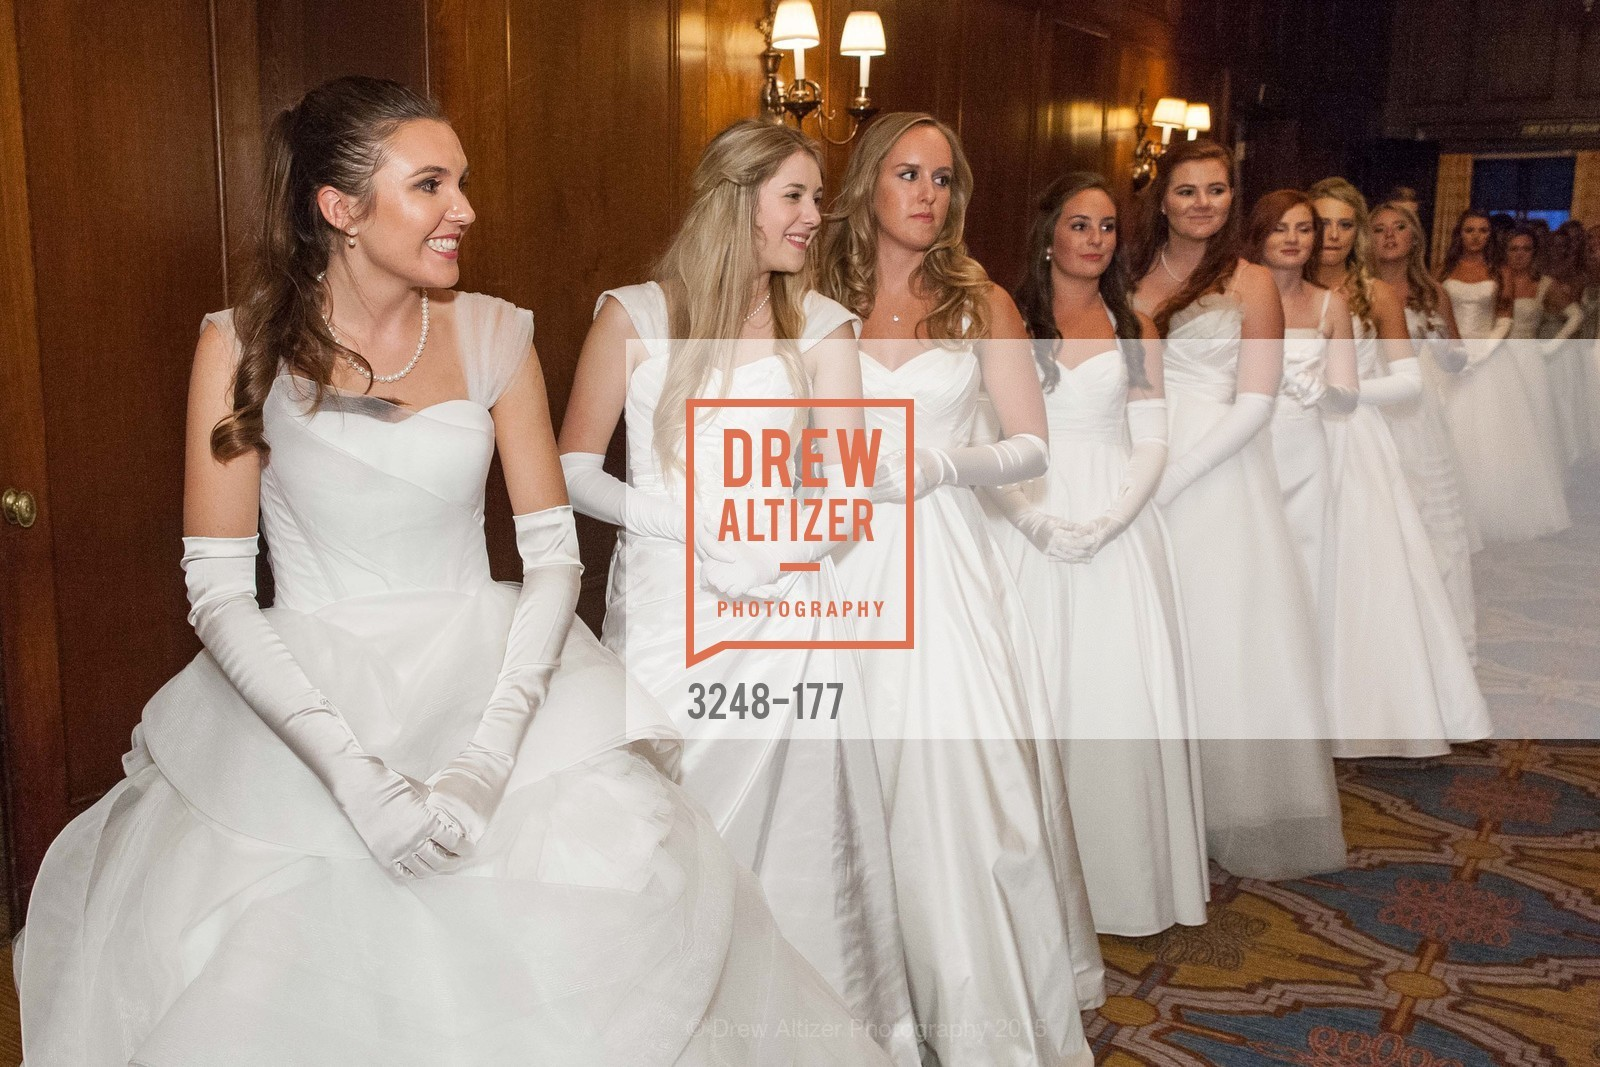 Jennifer Hannah Baylis, Julia Marley Chenette, Katarina Lina Churich, Hailey Elizabeth Cusack, Kendall Marion Finnegan, The 2015 San Francisco Debutante Ball, The Westin St. Francis San Francisco Union Square. 335 Powell St, June 20th, 2015,Drew Altizer, Drew Altizer Photography, full-service agency, private events, San Francisco photographer, photographer california